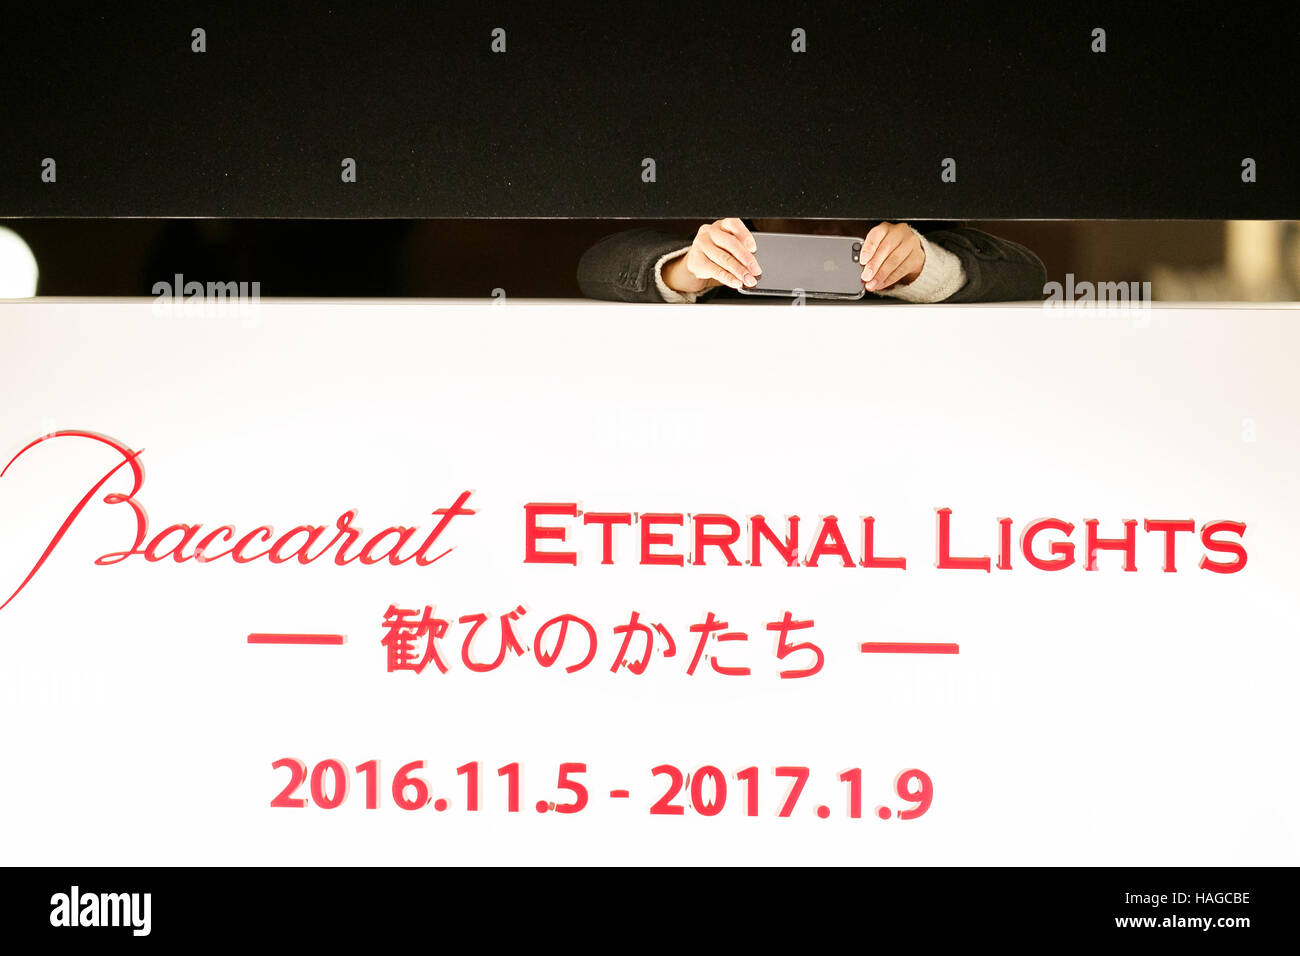 A woman takes pictures at Ebisu Garden Place on November 30, 2016, Tokyo, Japan. The Baccarat Eternal Lights is - Stock Image